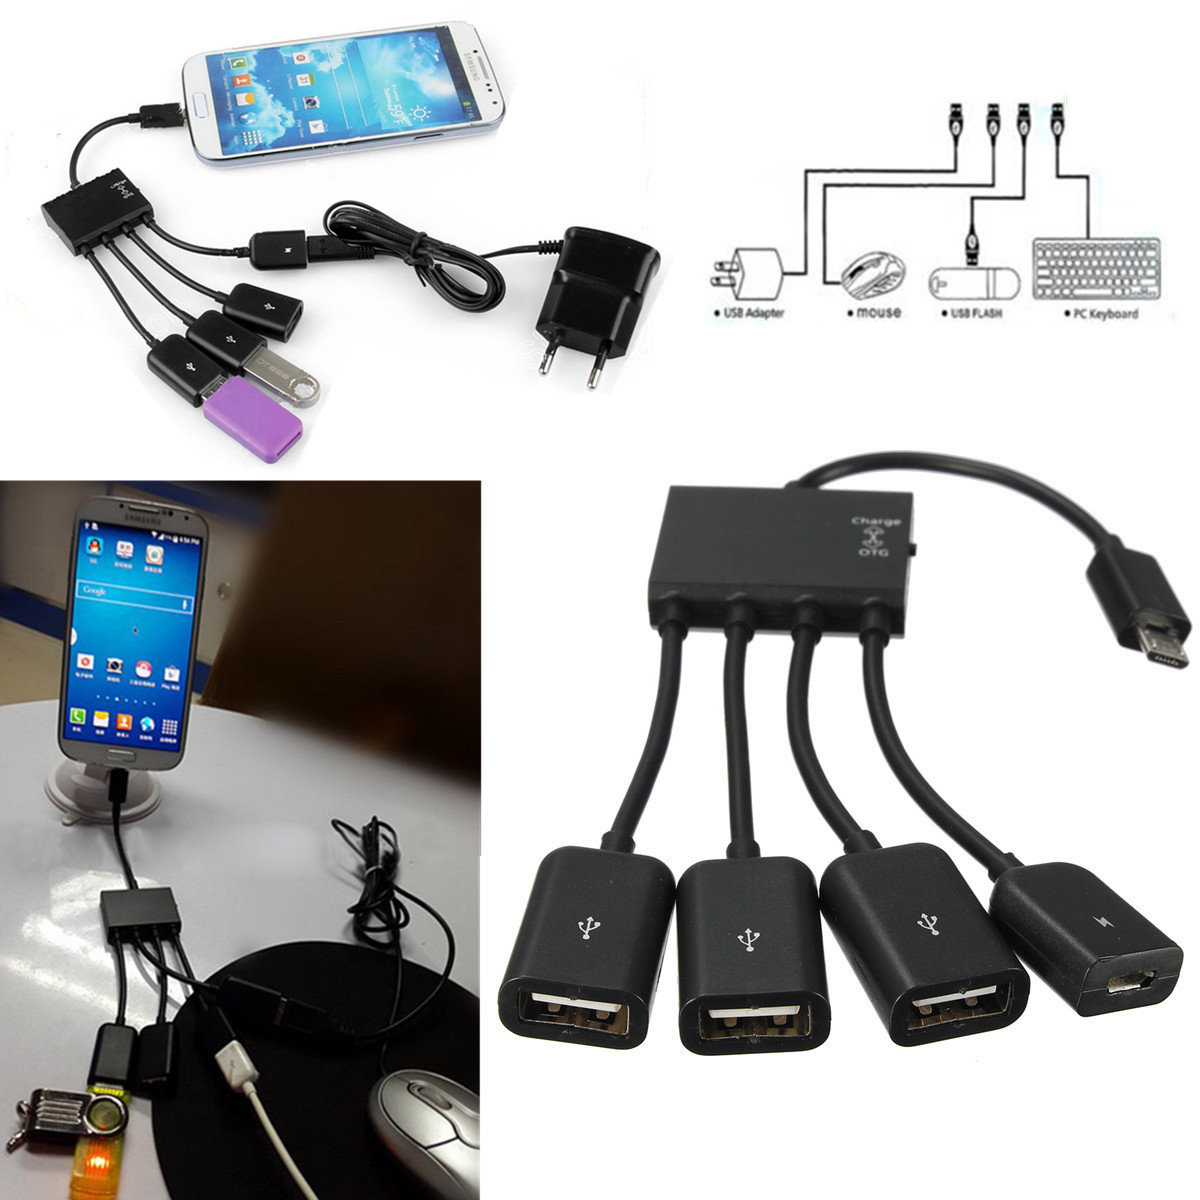 4 in 1 Micro USB Power Host OTG Hub Adapter Cable For Android Phone & Tablet PC